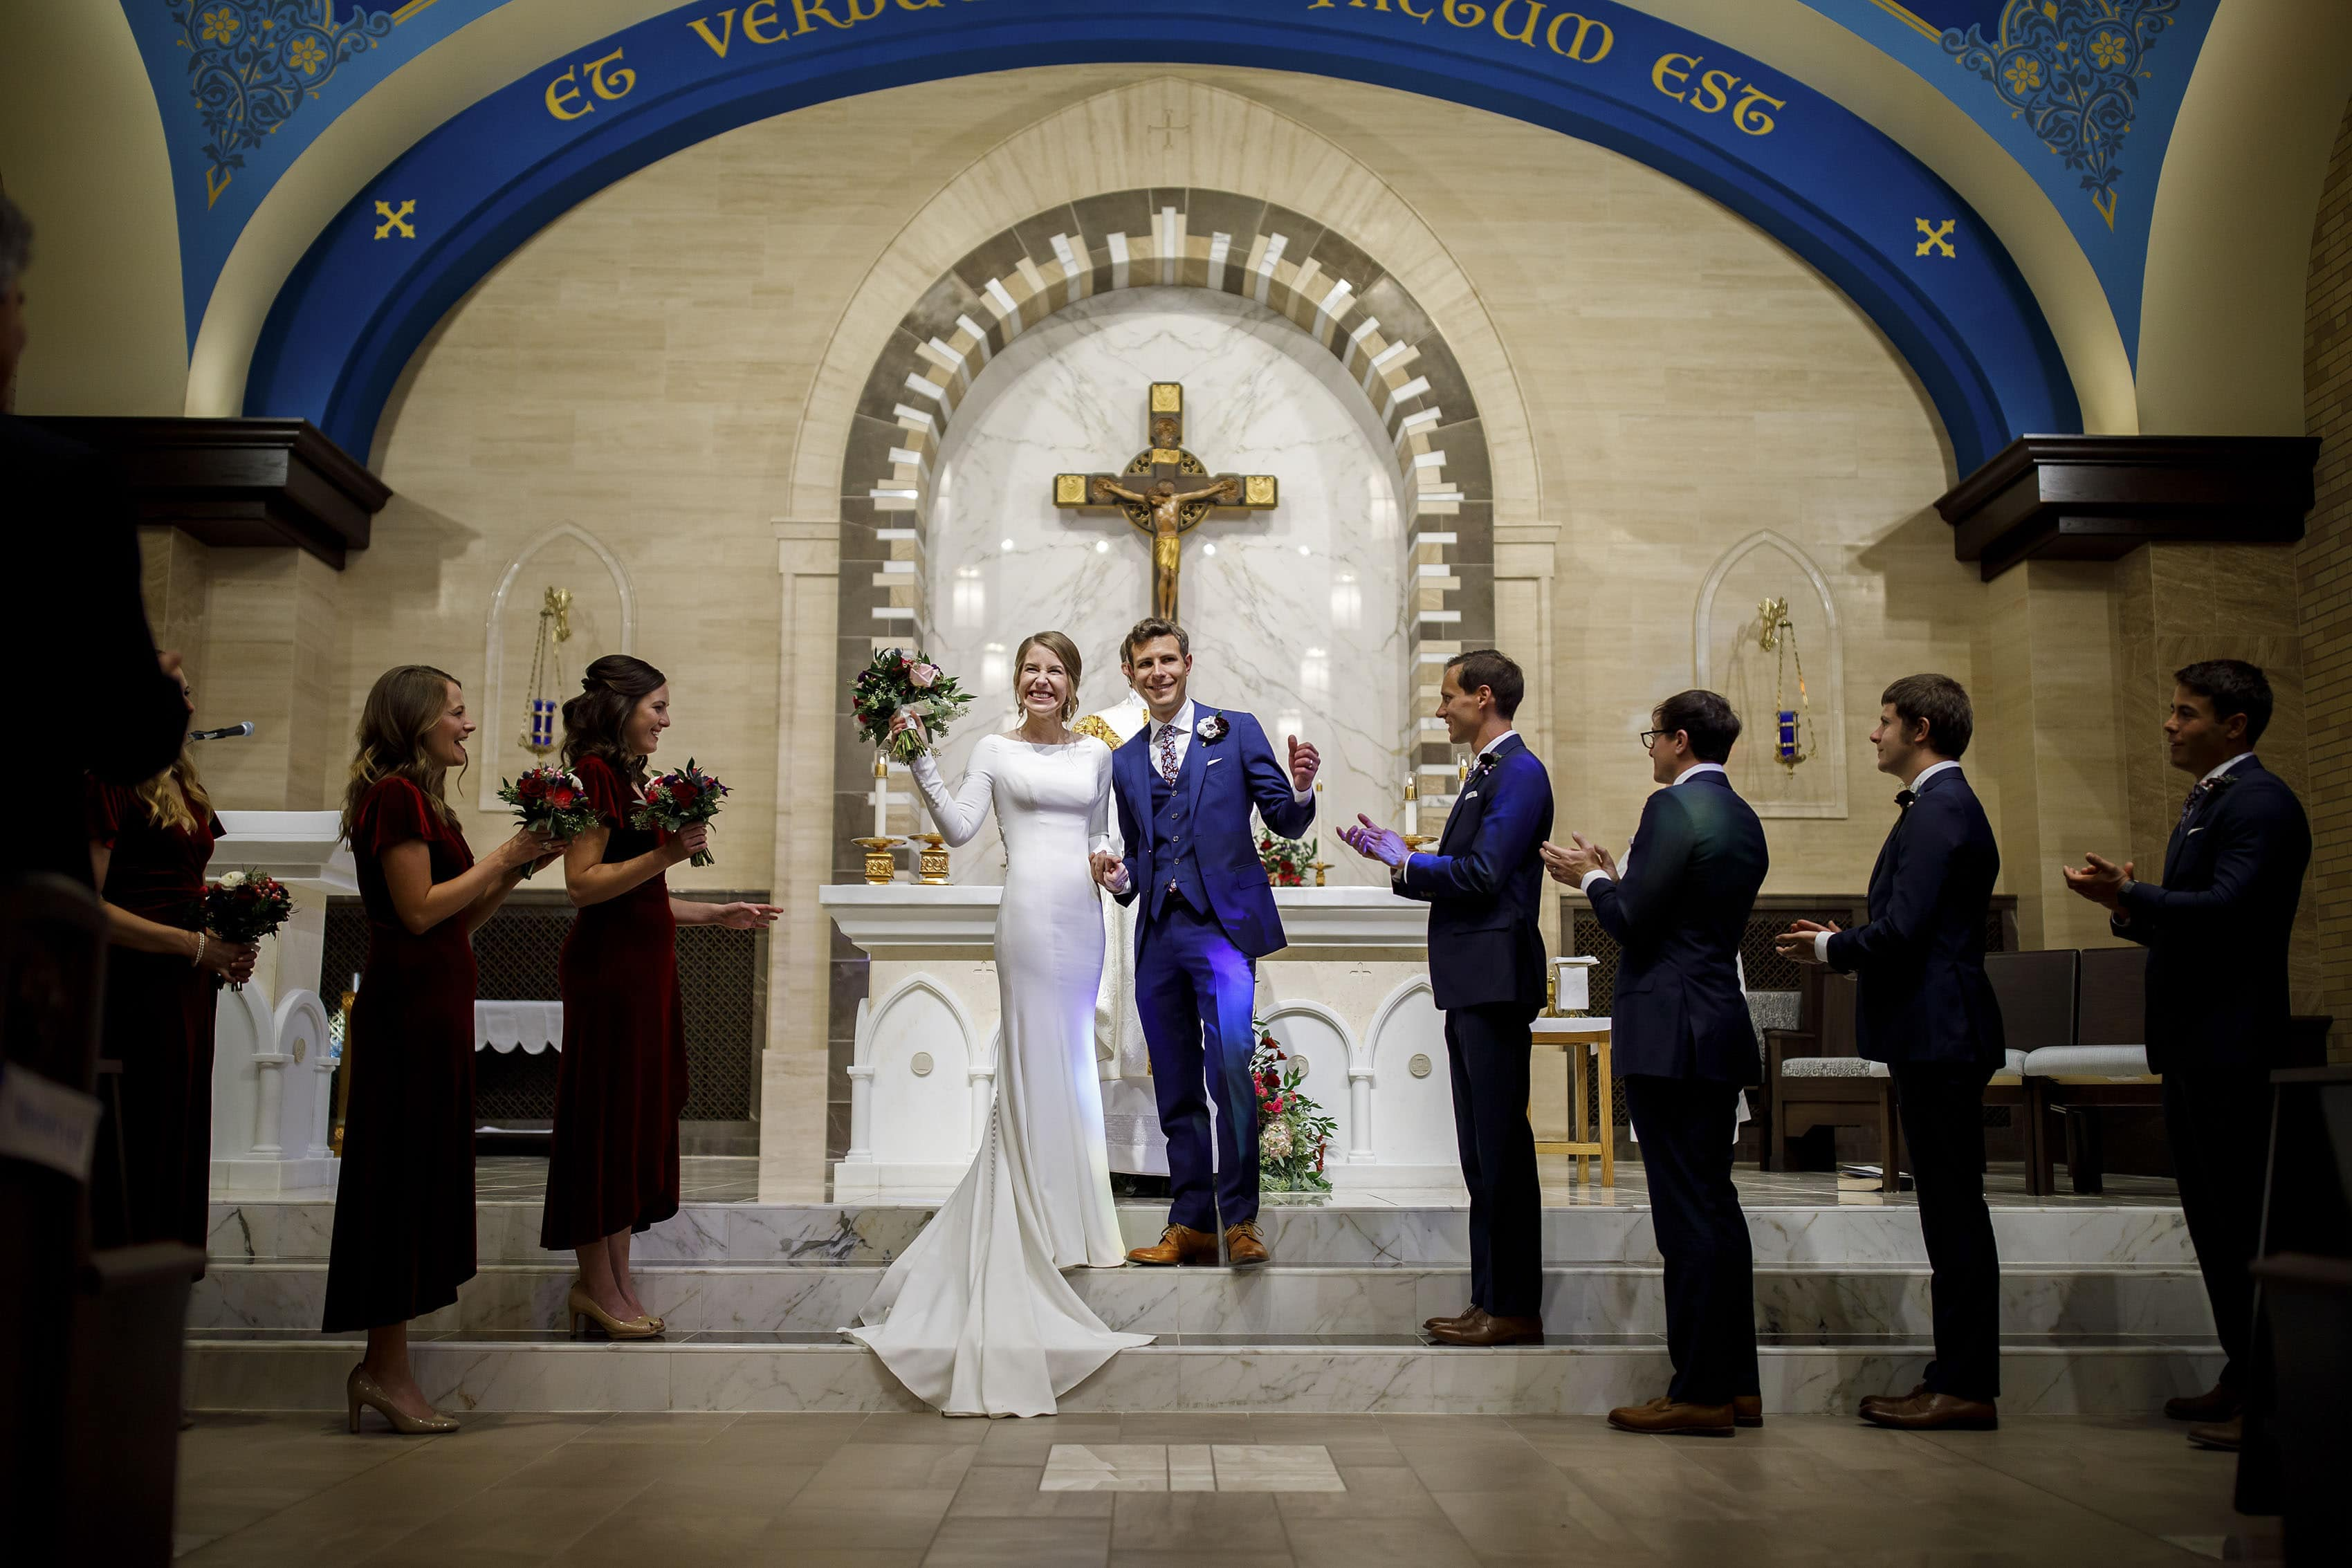 The couple celebrates during their wedding ceremony at Our Lady of Lourdes in Denver